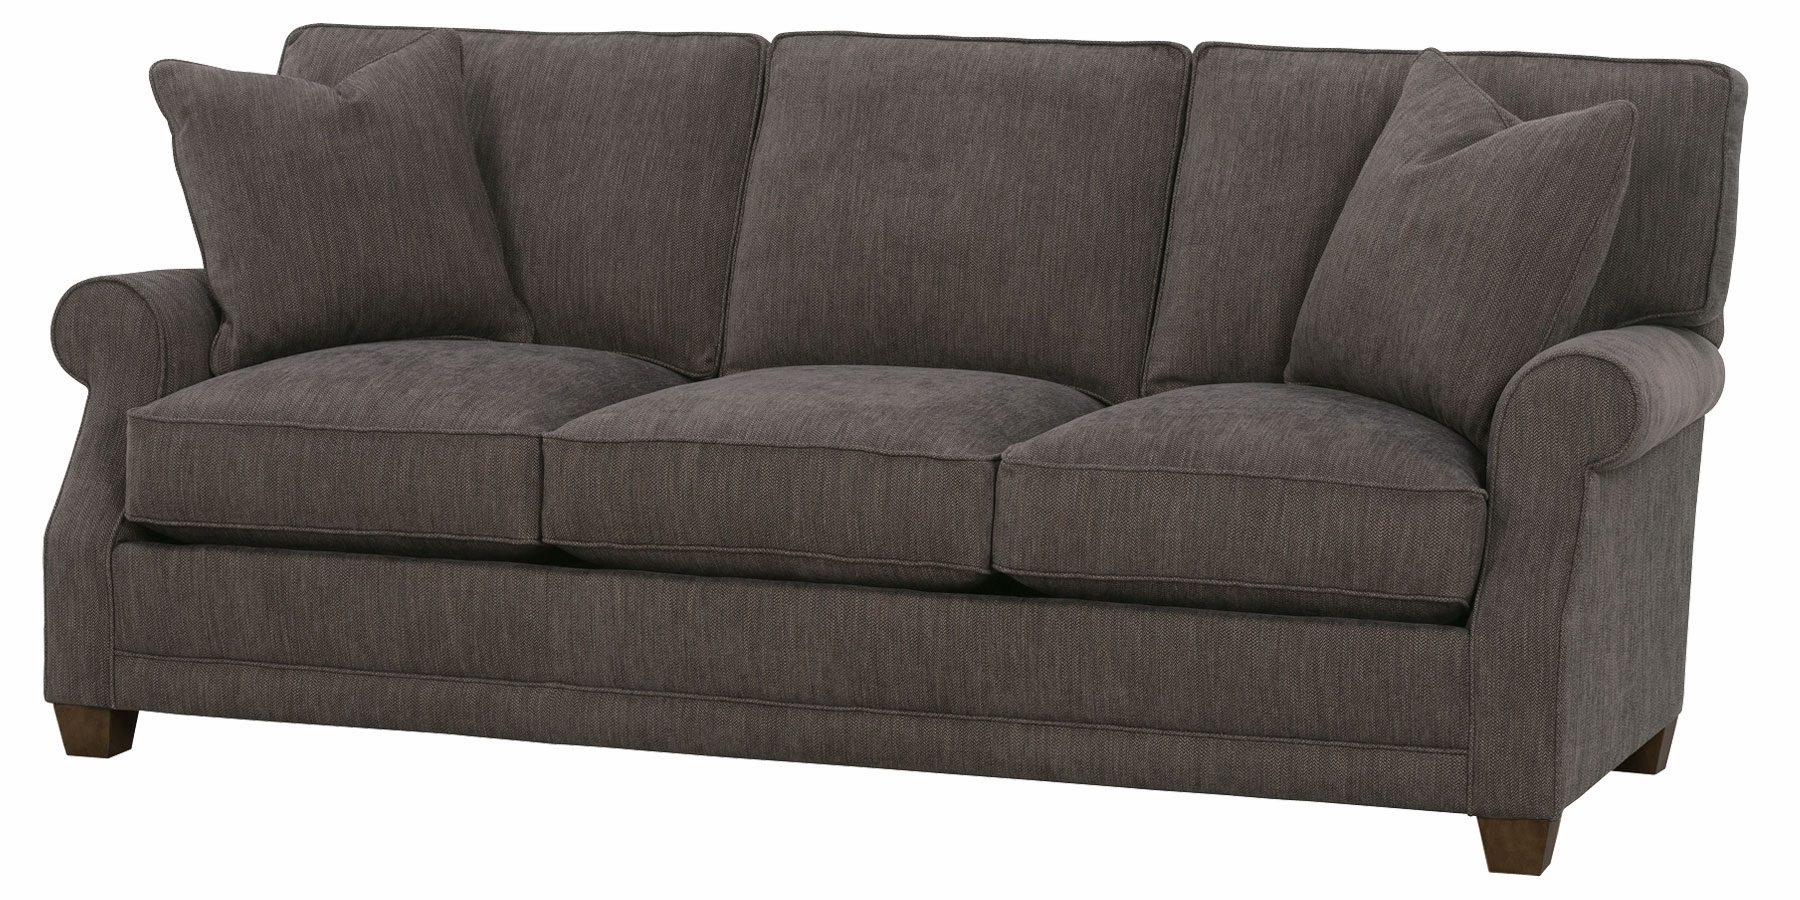 Sectional Sofas In Charlotte Nc In 2018 Good Sleeper Sofa Charlotte Nc 32 For Sectional Sofas With Sleeper (View 13 of 20)